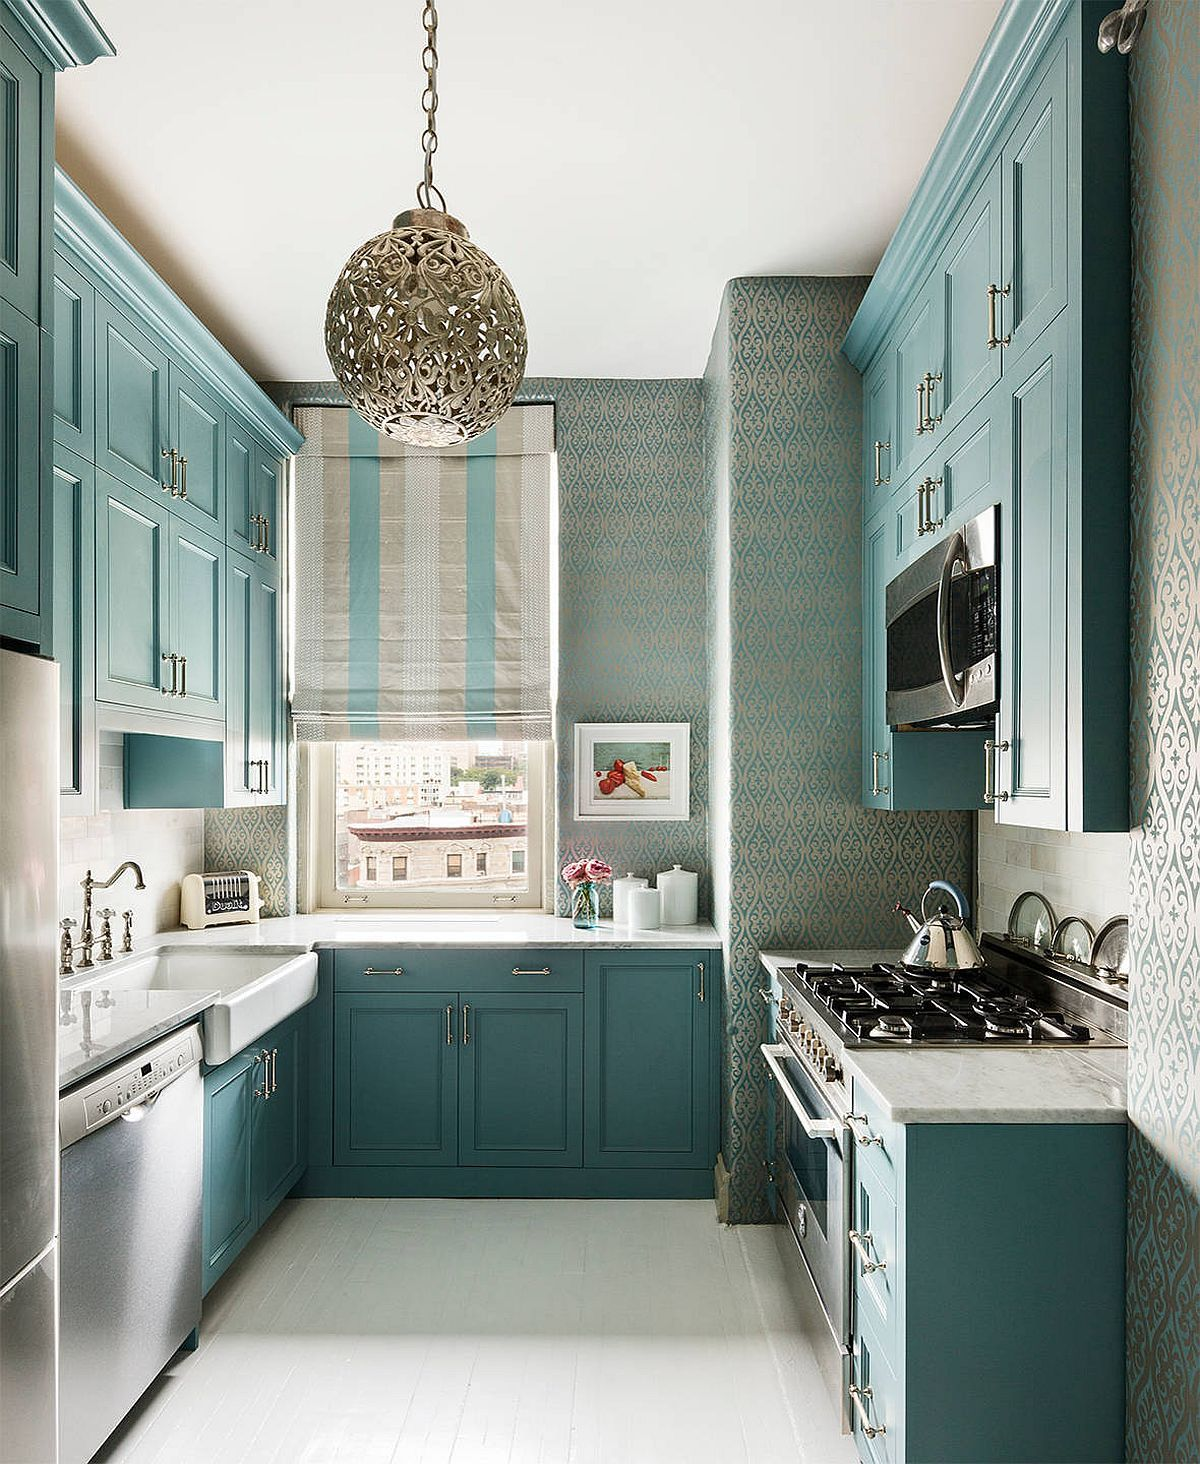 Pin By Beacon Homes On Beacon Kitchens Distressed Kitchen Turquoise Kitchen Cabinets Kitchen Cabinet Design